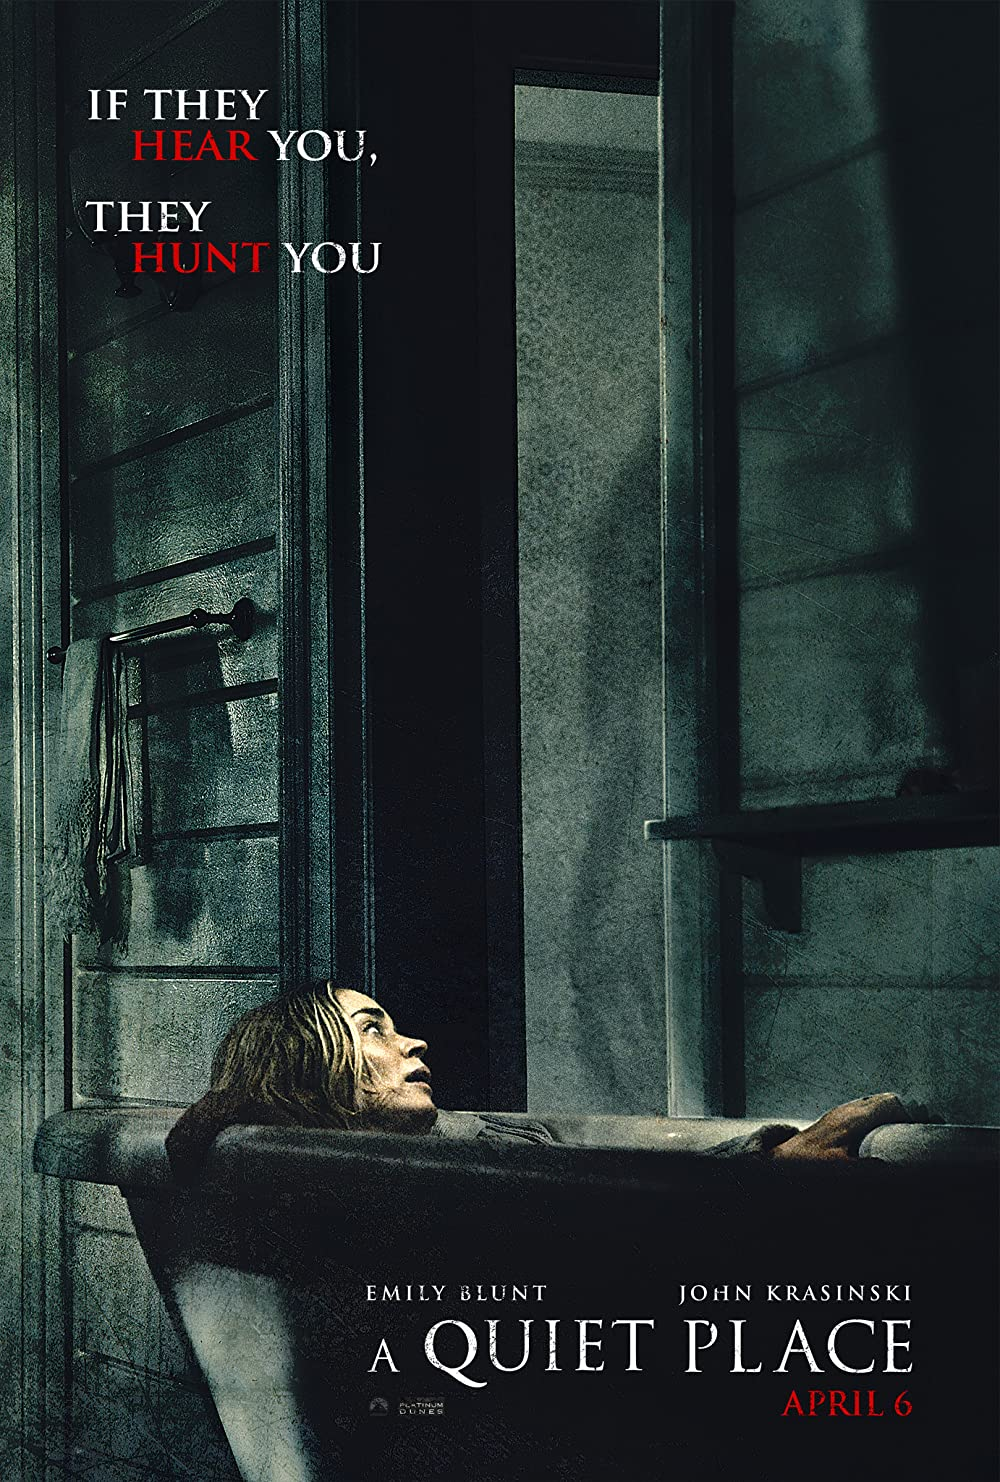 A Quiet Place: Directed by John Krasinski. With Emily Blunt, John Krasinski, Millicent Simmonds, Noah Jupe. In a post-apocalyptic world, a family is forced to live in silence while hiding from monsters with ultra-sensitive hearing.